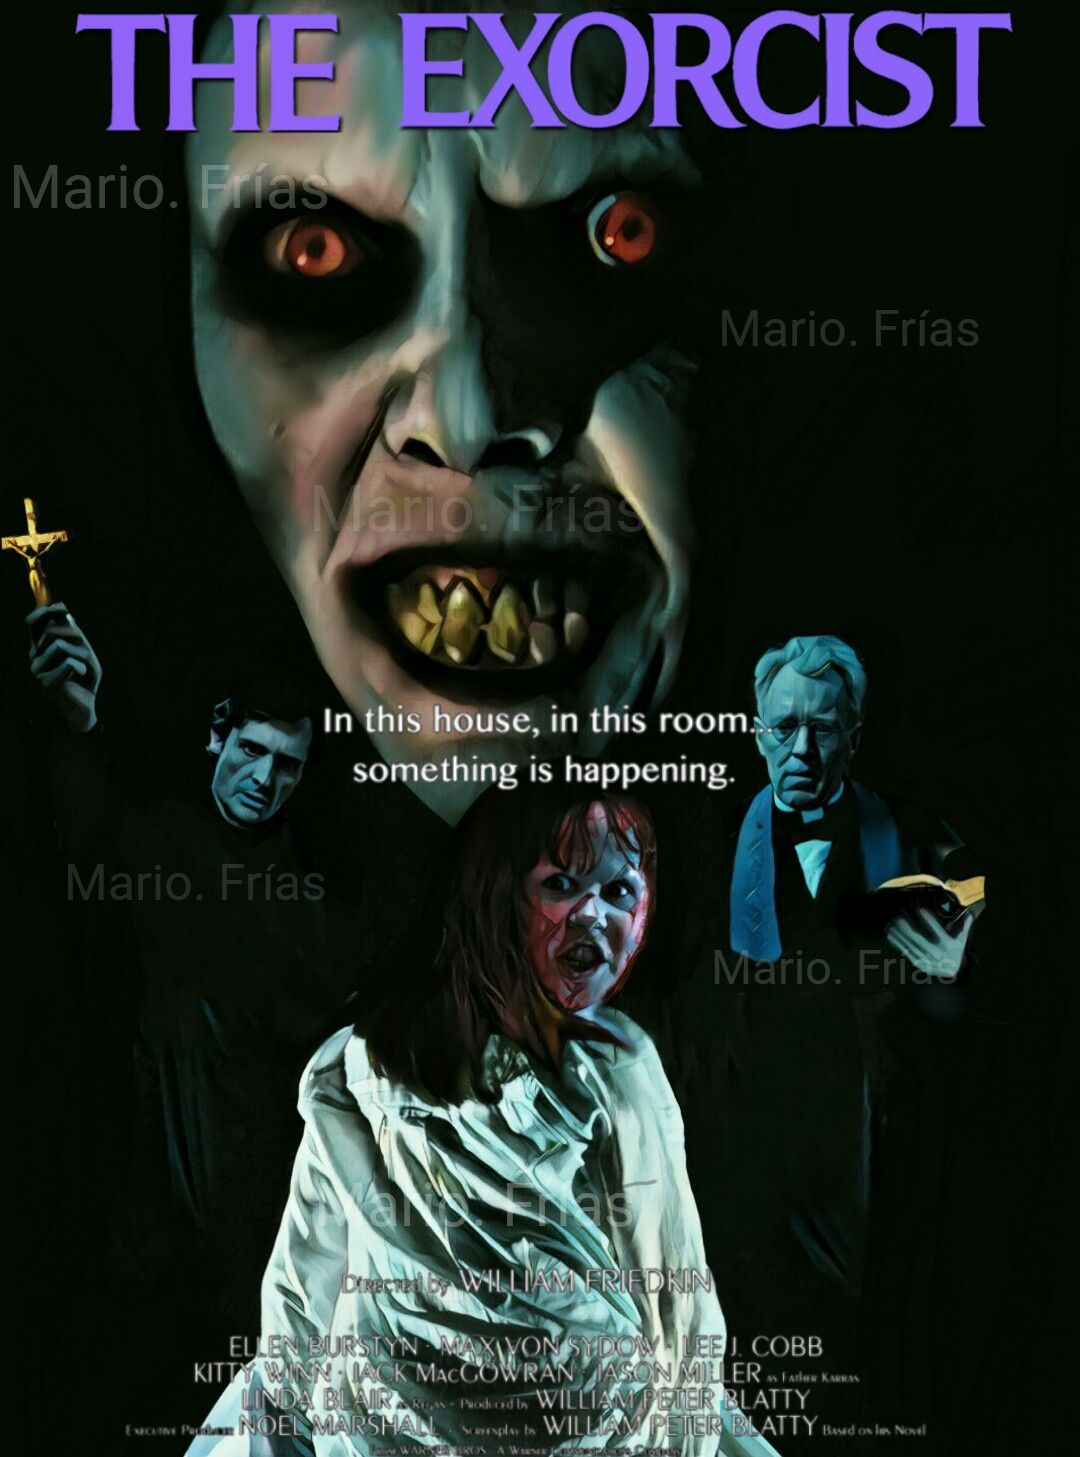 scream 1996 wes craven horror movie slasher fan made edit by mario the exorcist 1973 horror movie fan made edit by mario frías